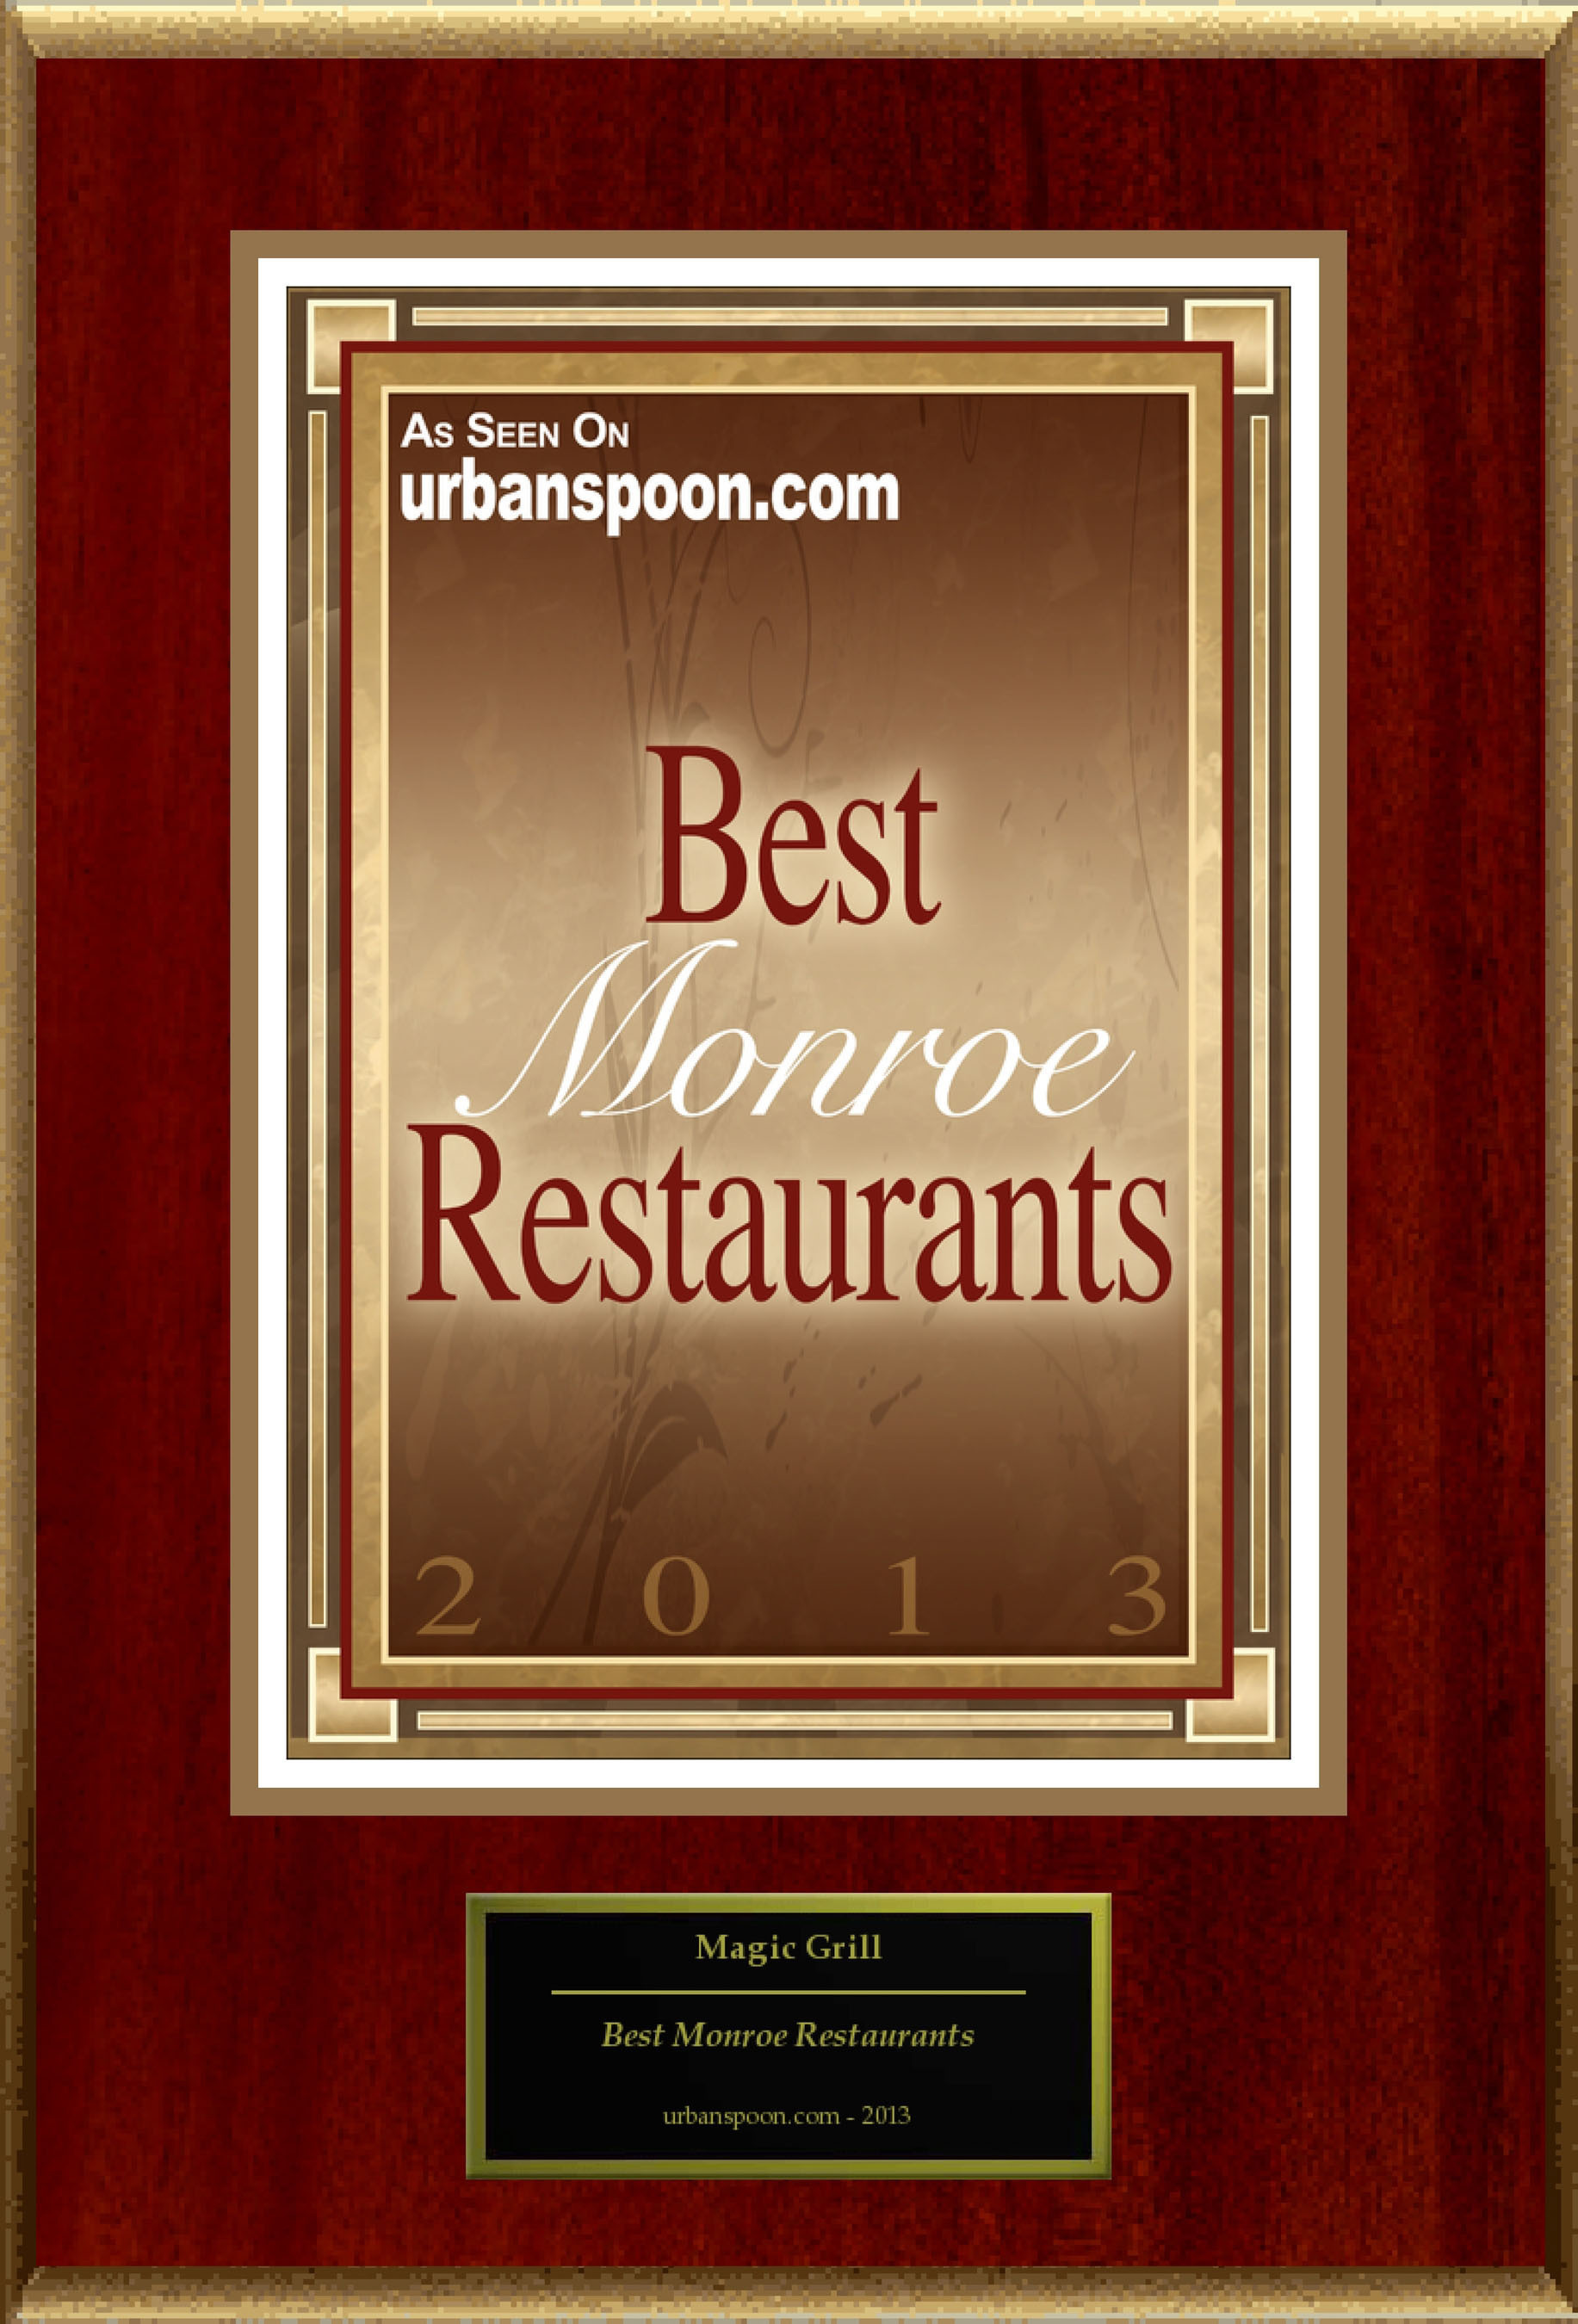 """Magic Grill Selected For """"Best Monroe Restaurants"""". (PRNewsFoto/Magic Grill) (PRNewsFoto/MAGIC GRILL)"""